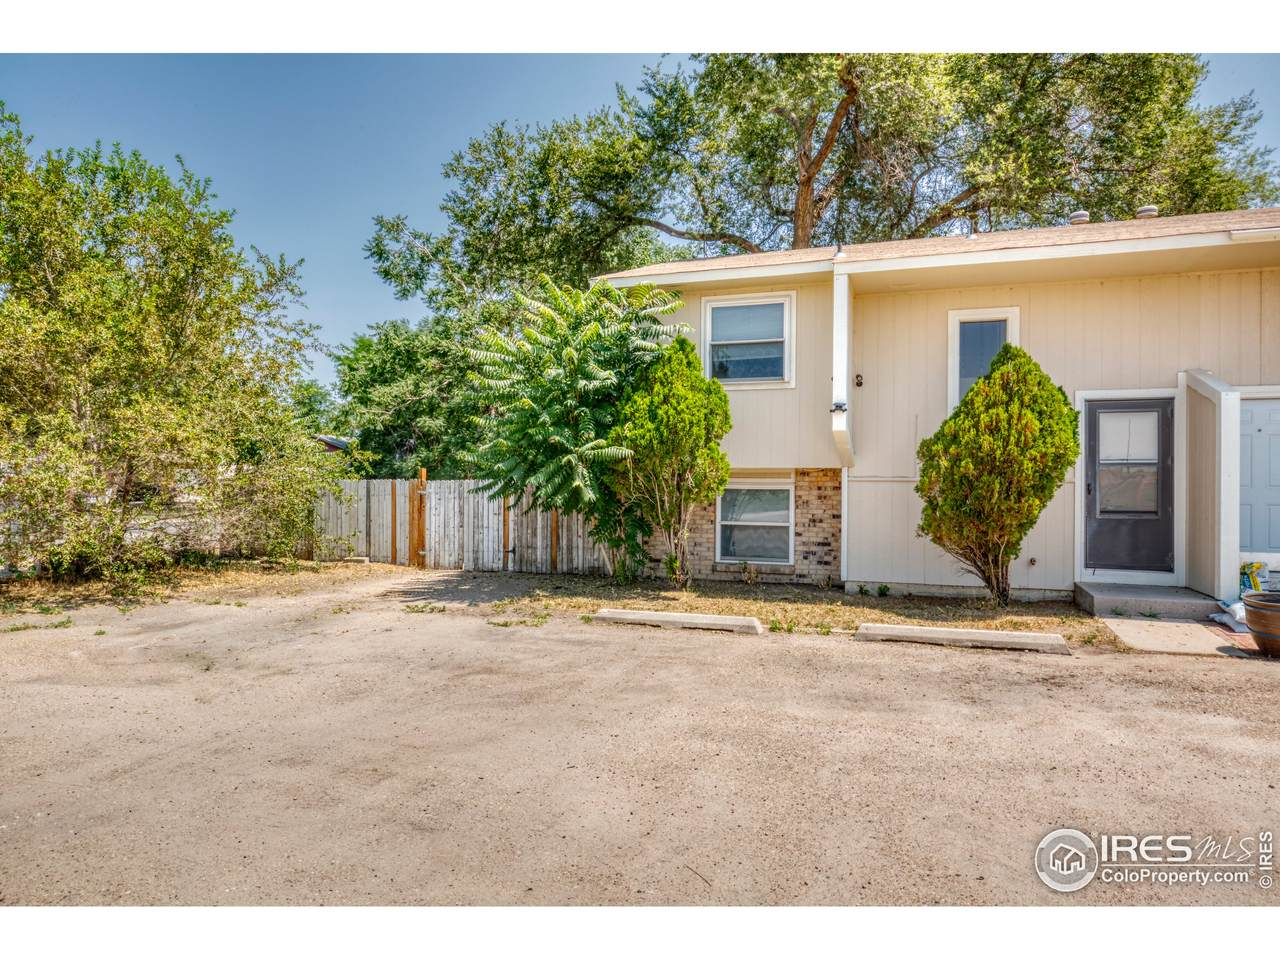 232 Taylor Ave - Photo 1